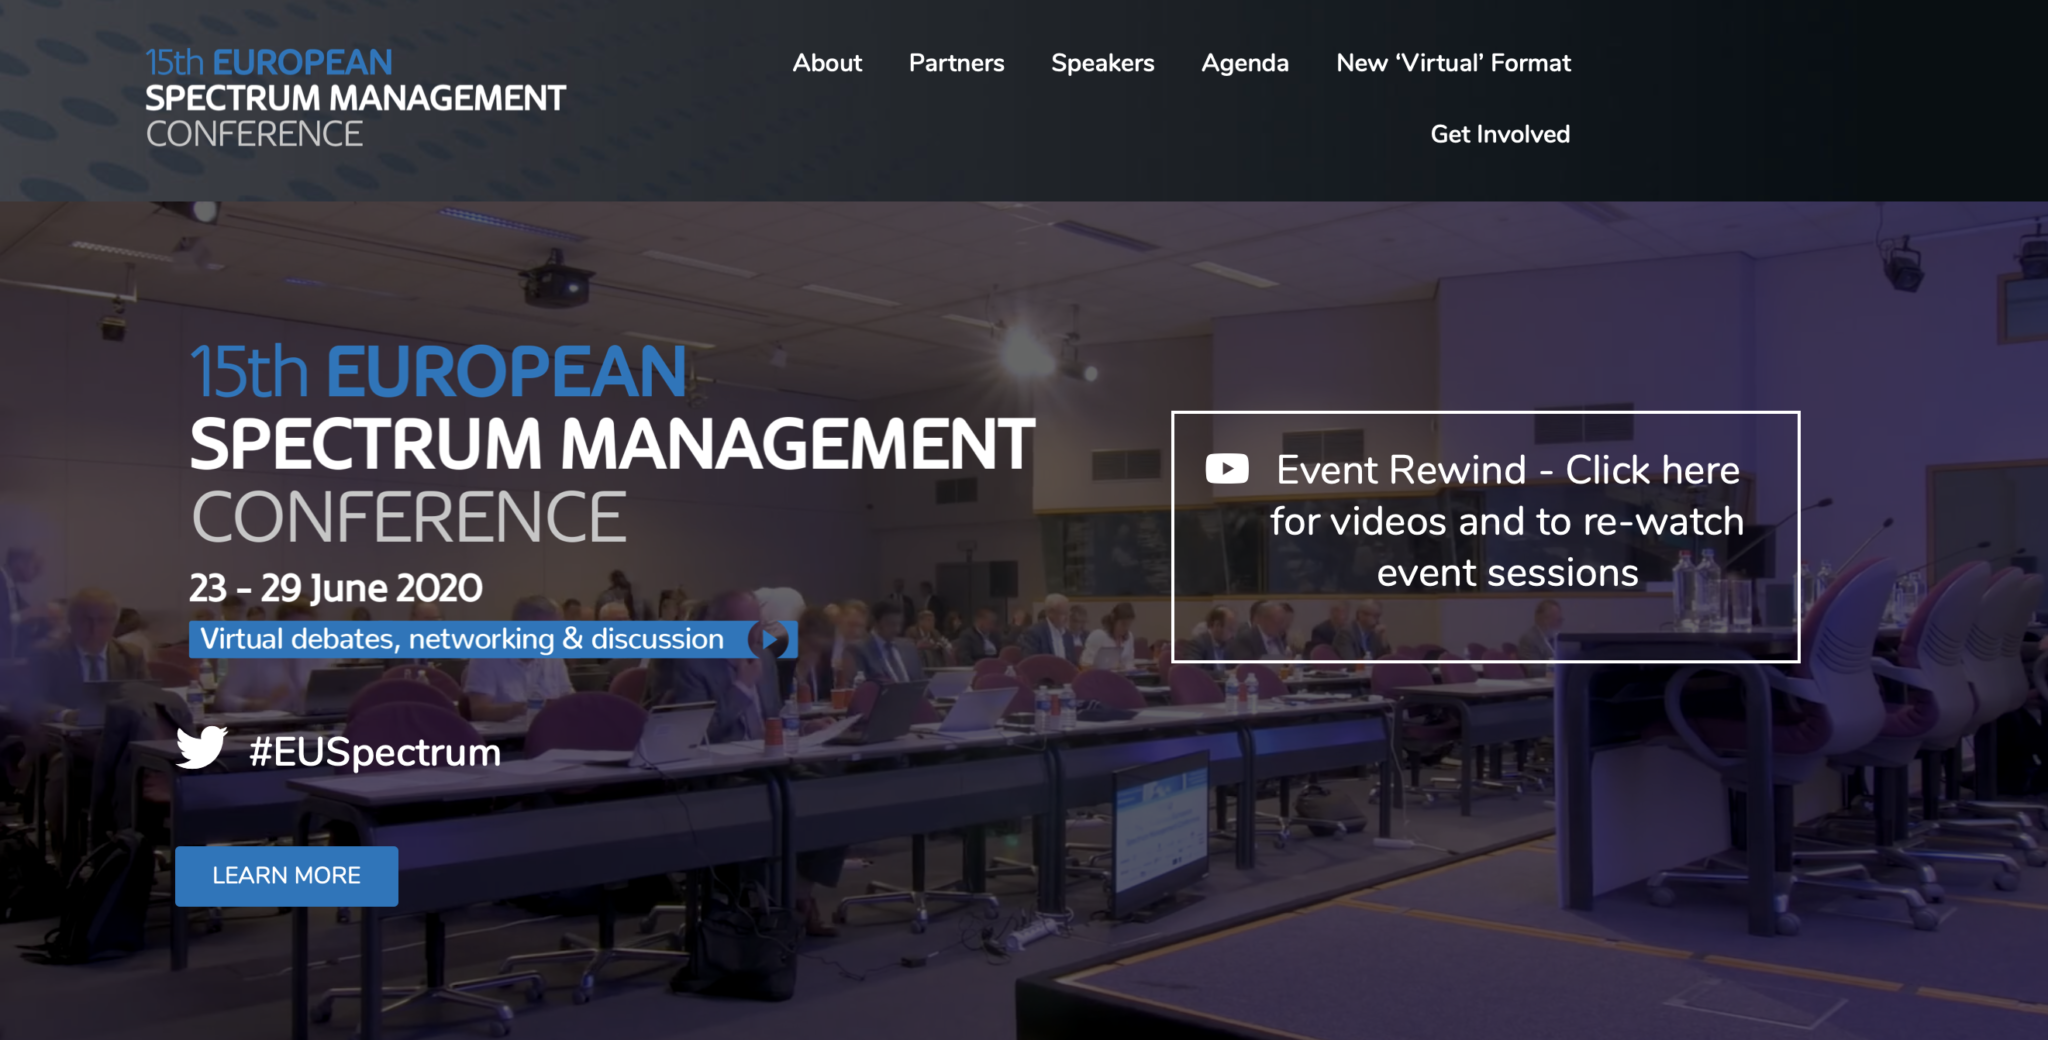 15th European Spectrum Management Conference